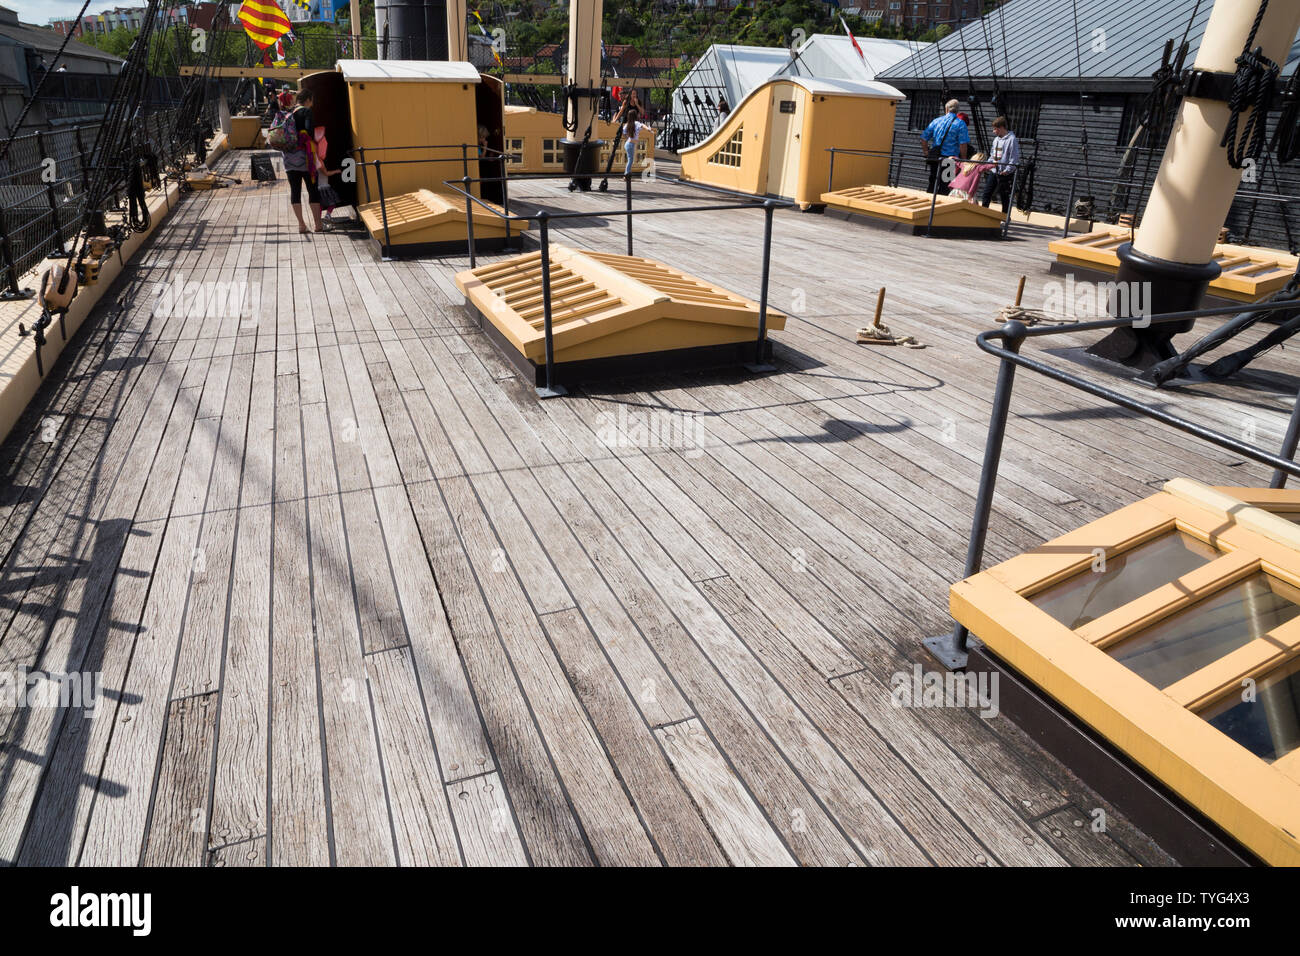 The wooden primary upper deck of the SS Great Britain, Brunel's steam powered ship in dry dock and on a sunny day. The ship is now a museum attraction in Bristol. UK - Stock Image